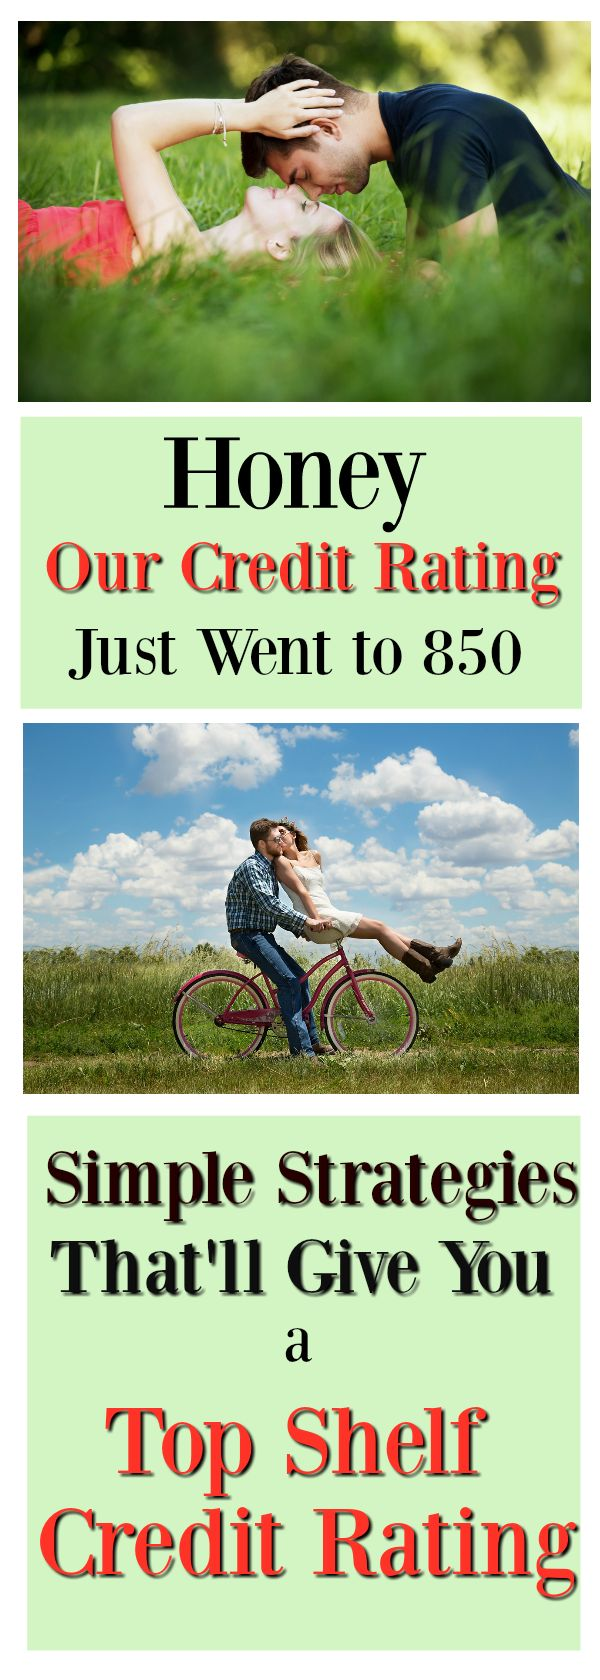 Protecting our credit will save us thousands of dollars in fees. Credit Rating | credit report | credit repair | credit scores | credit card debt | credit score